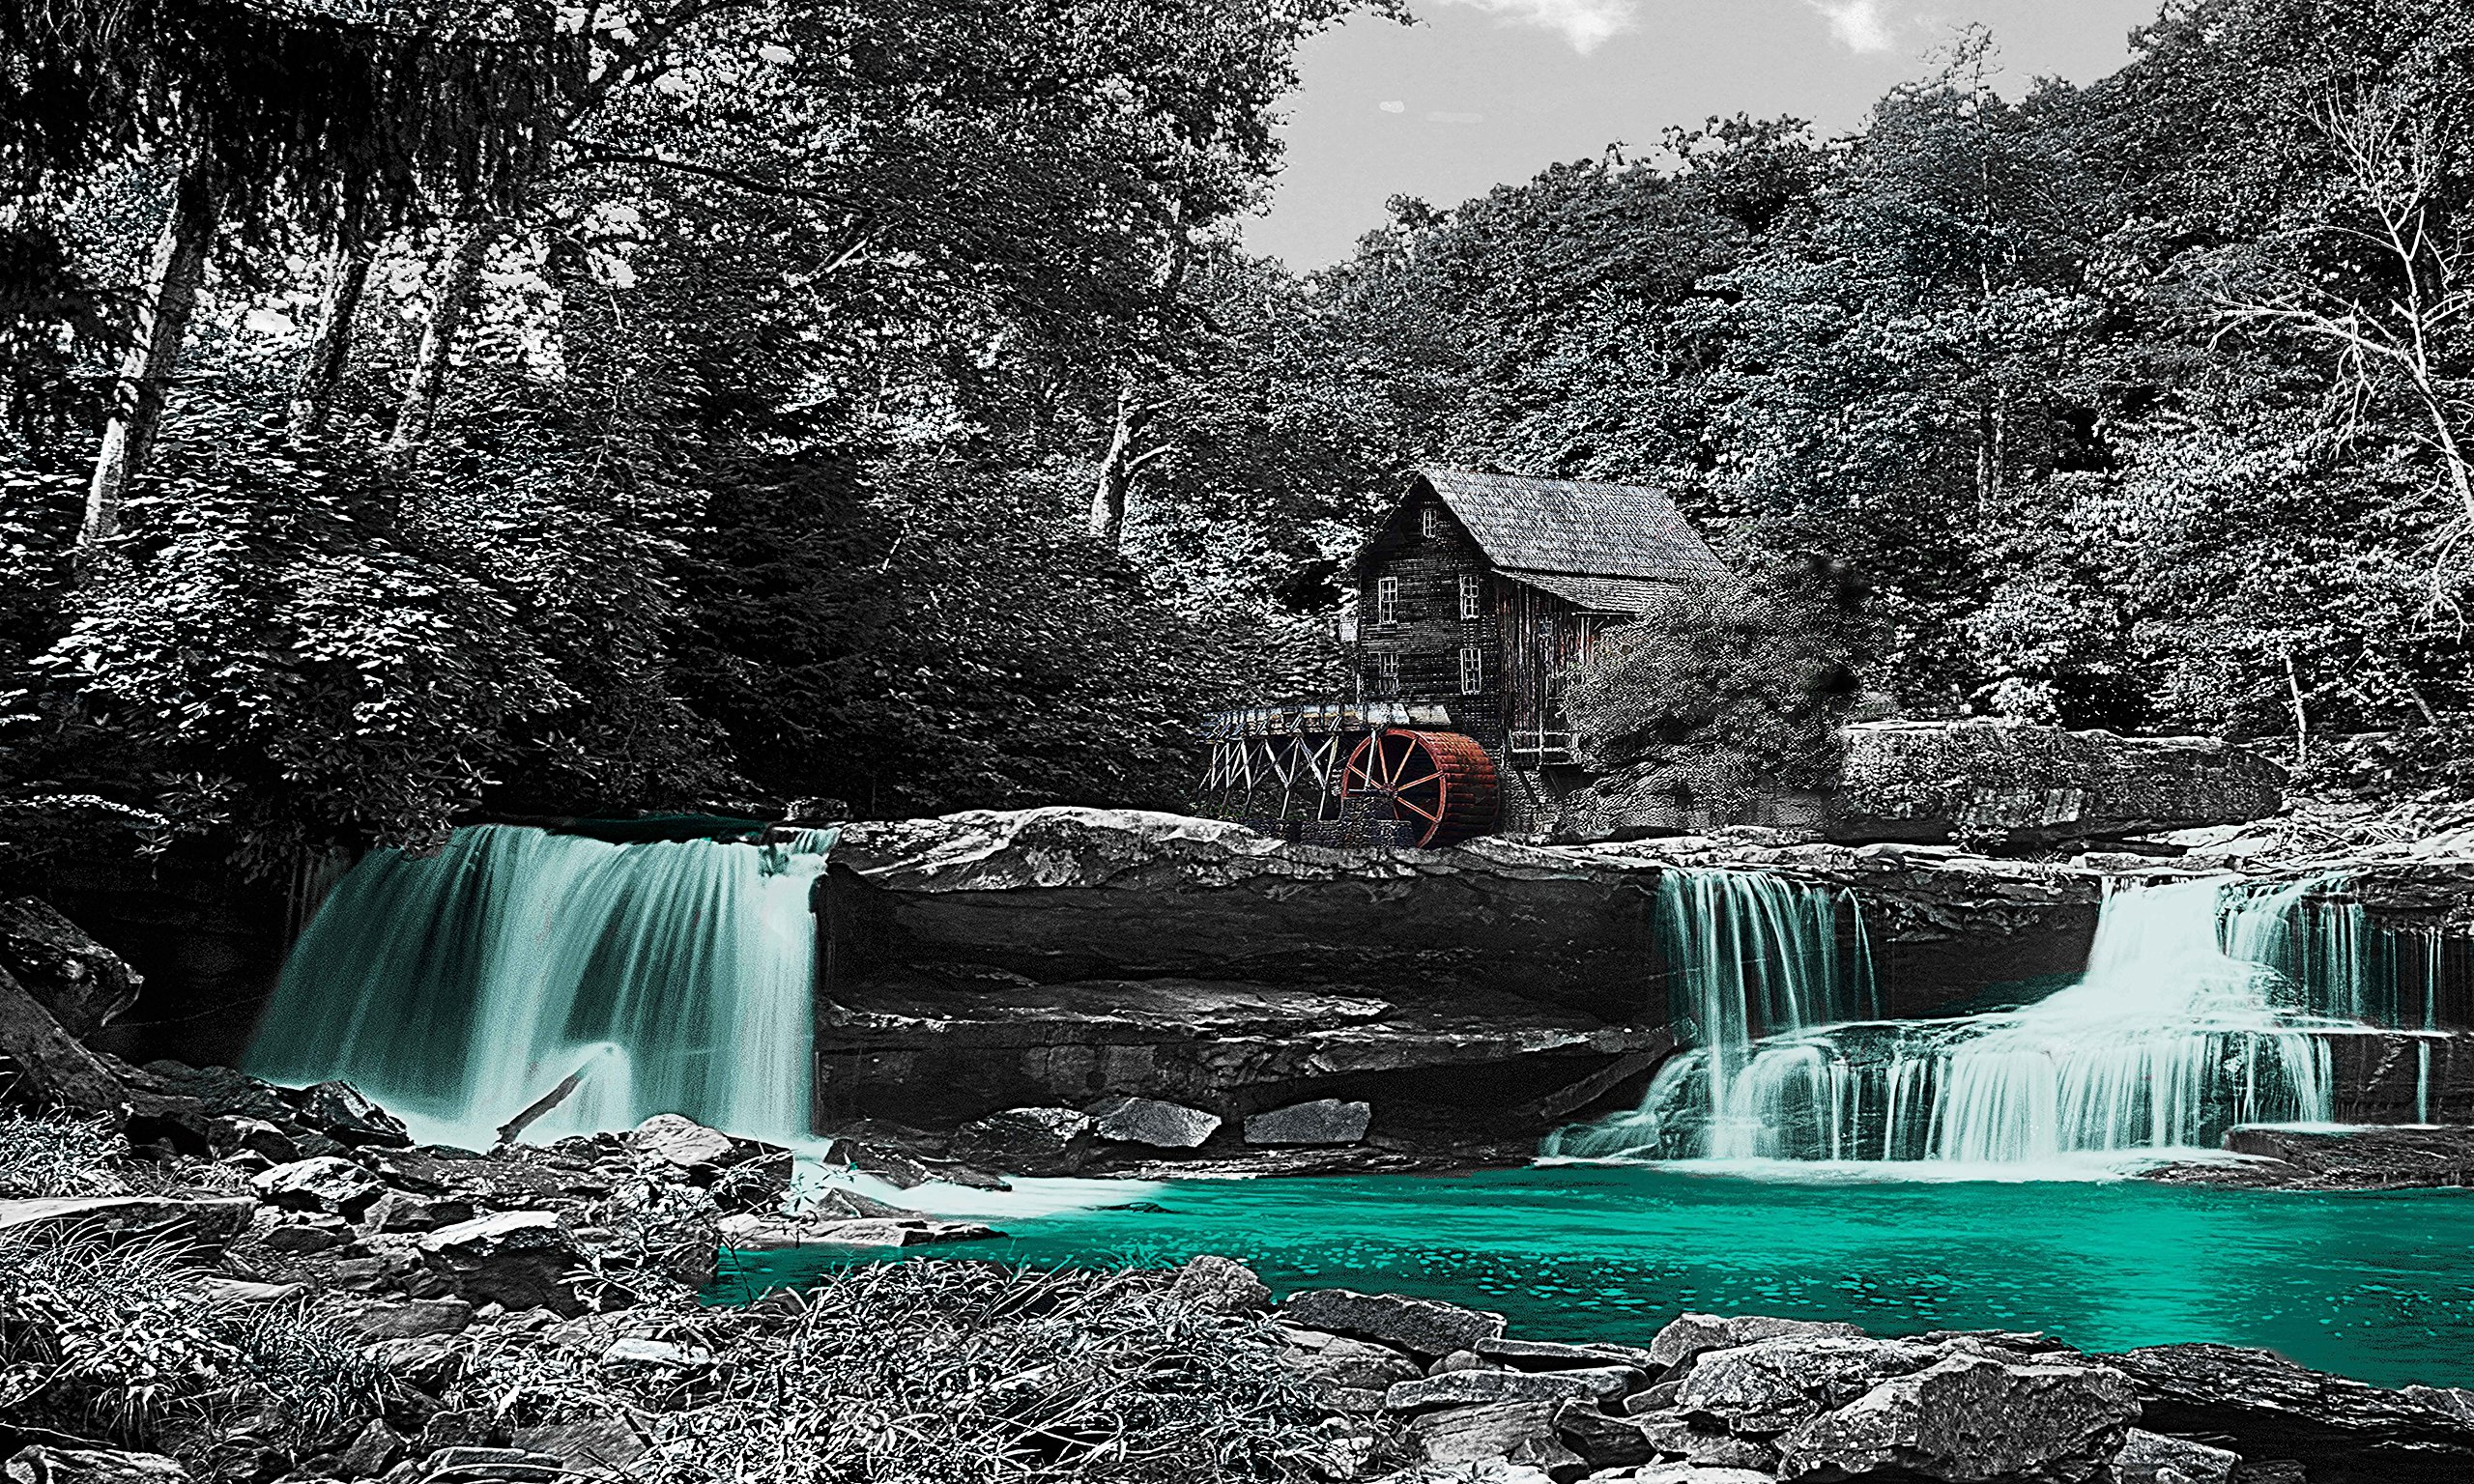 River Mill - Teal Brown/Gray Background Canvas Wrapped Home Decor Wall Art Water Falls Pictures on Canvas. Wall art for Living Room Bedroom Home Office (20x40, Gray)